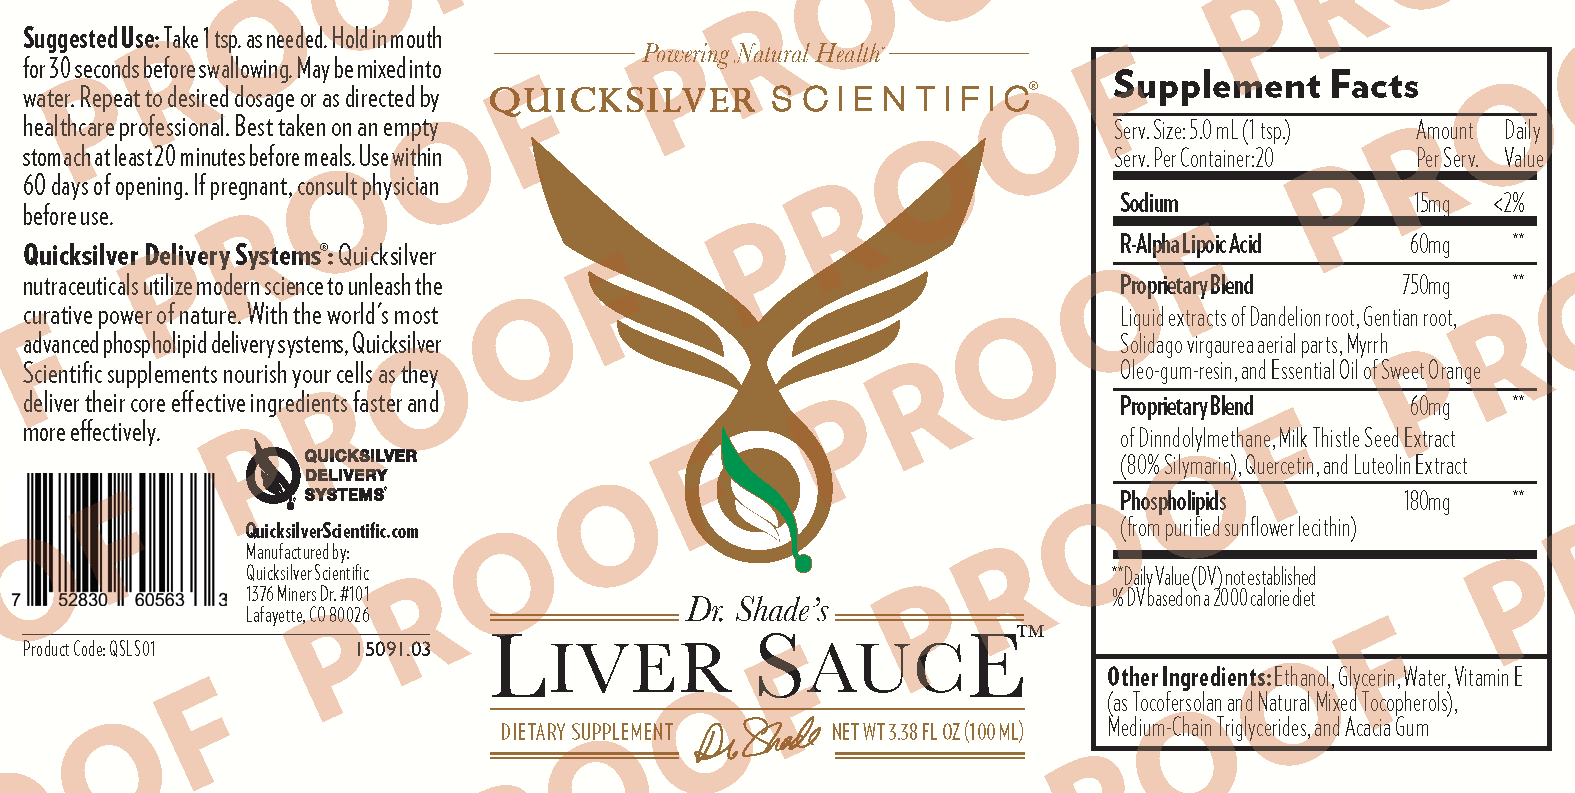 Liver Sauce 100ml Herbal Line 1509103 Kids Probiotic Pixies Rad Berry 30 pkts